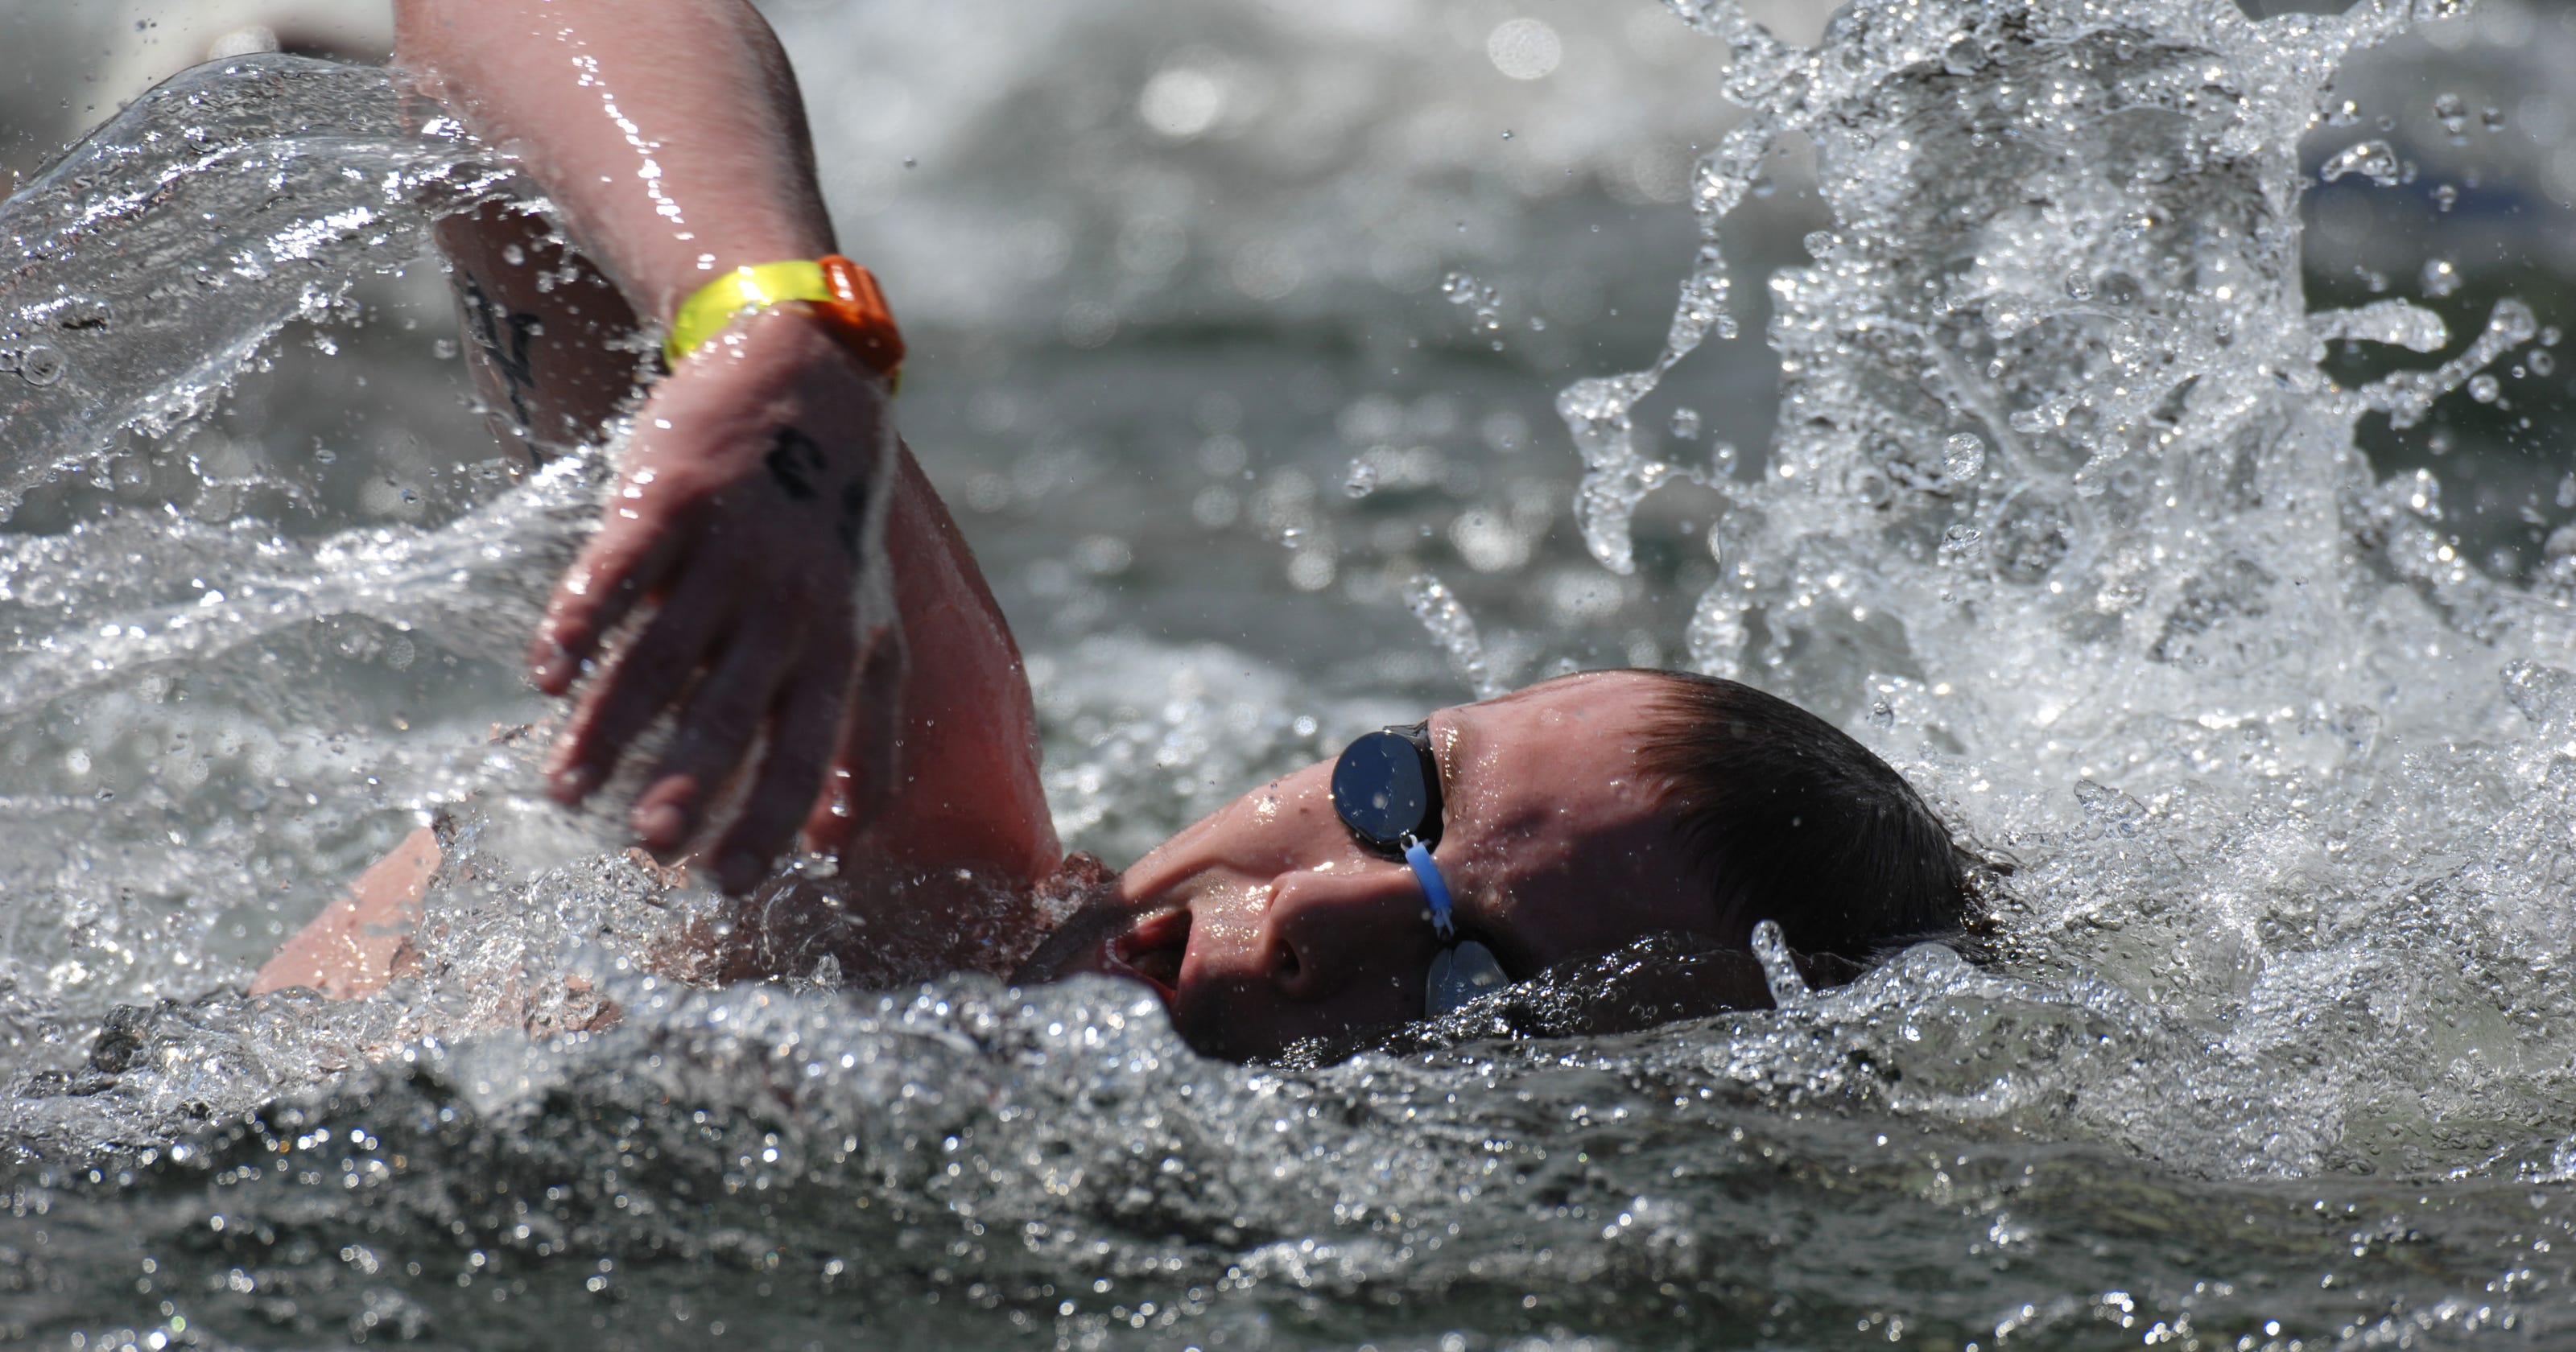 Open Water National Championships will include Olympians